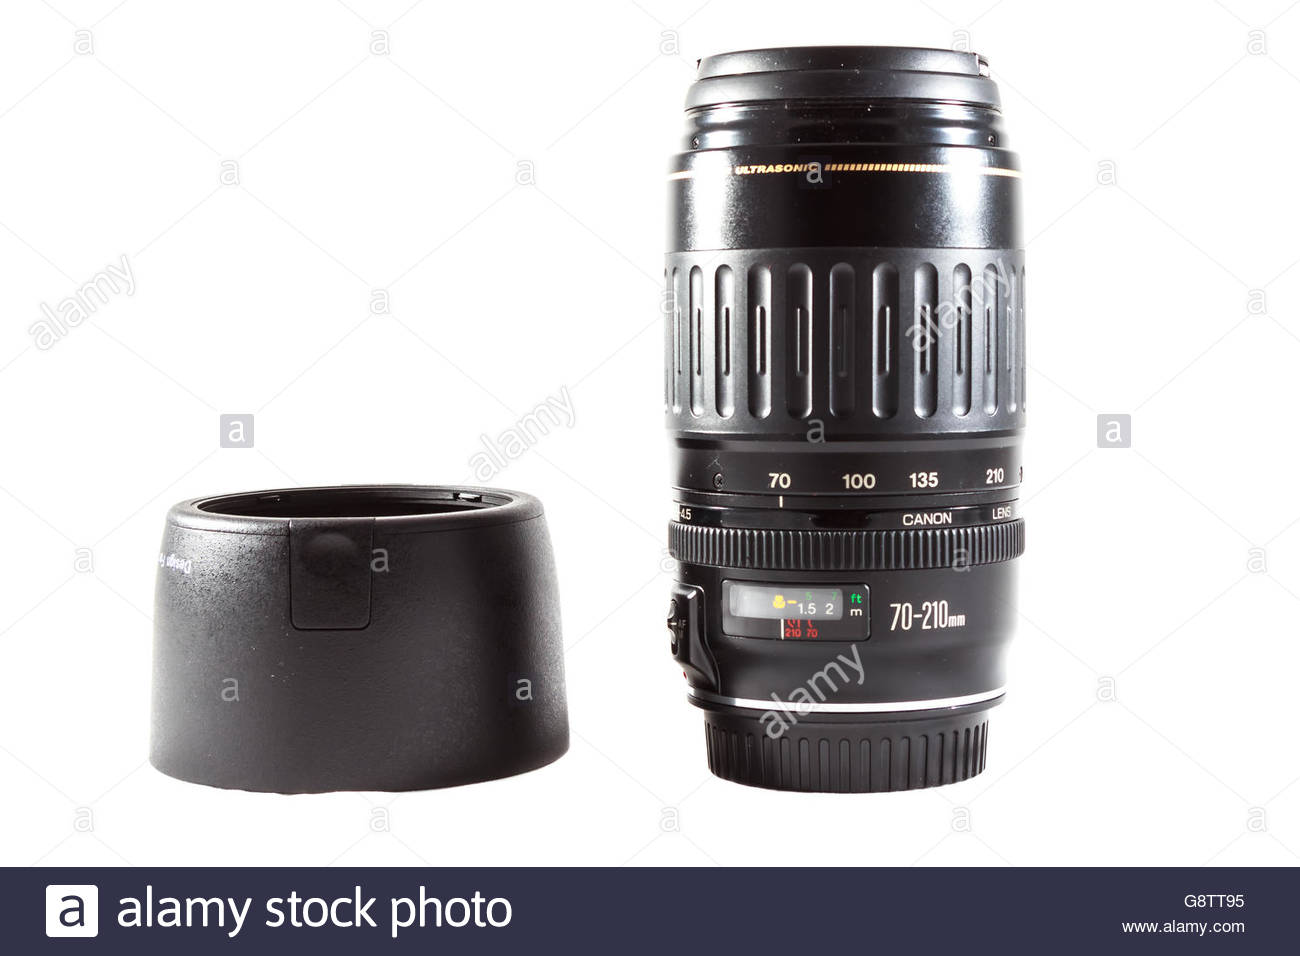 Canon EF 70-210mm f/3.5-4.5 USM lens made by Canon inc. with lens hood - Stock Image